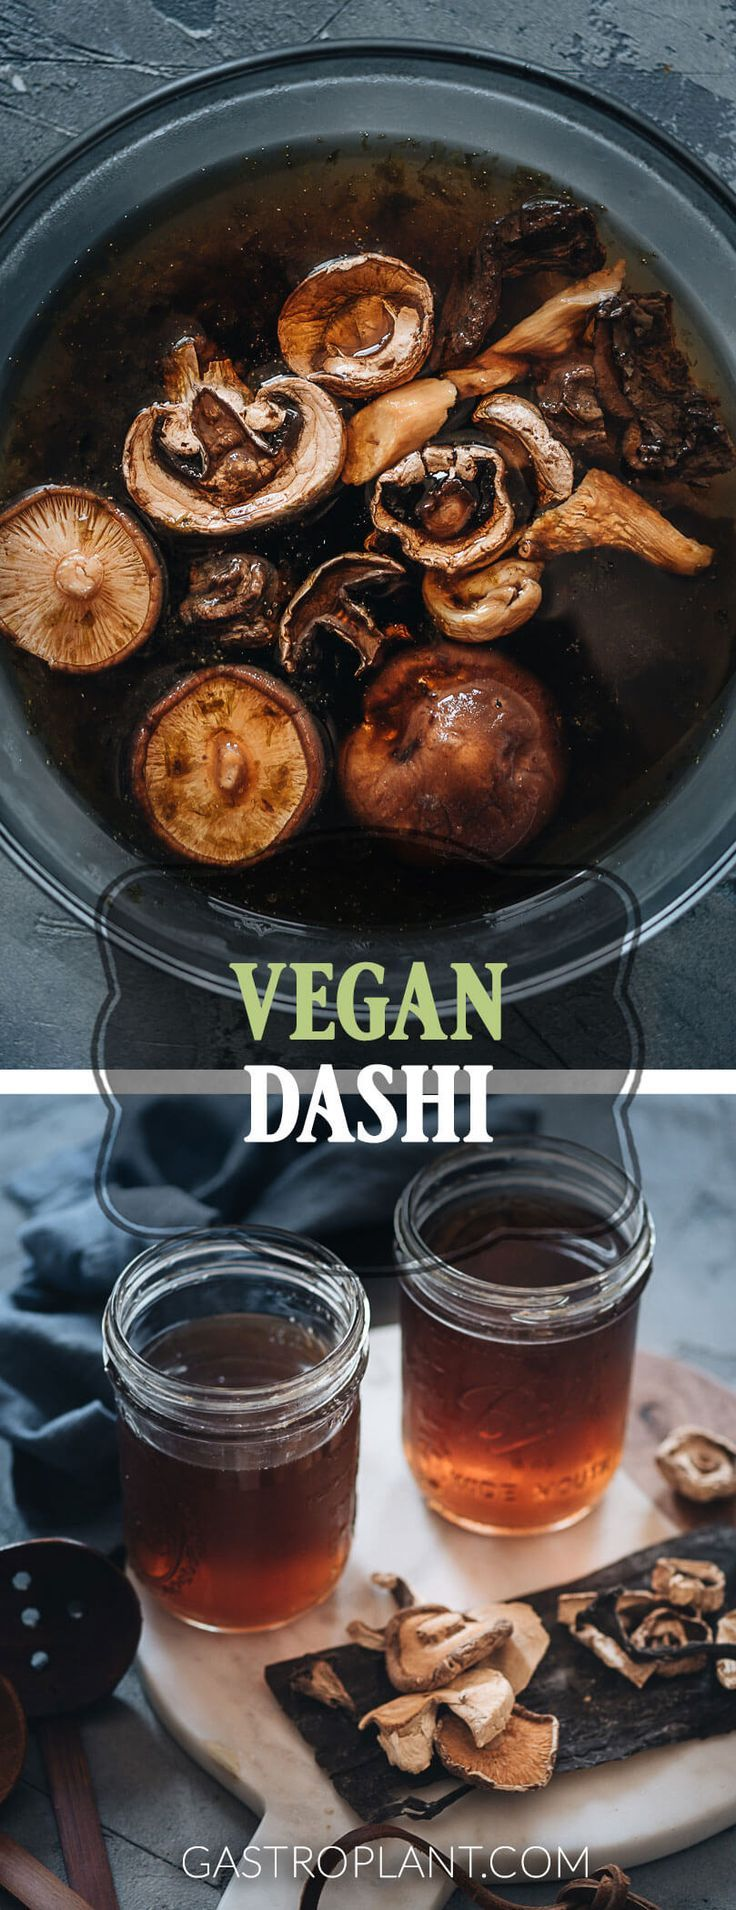 Vegan Dashi | Tastes like the earth and the sea. Made from dried mushrooms and k…